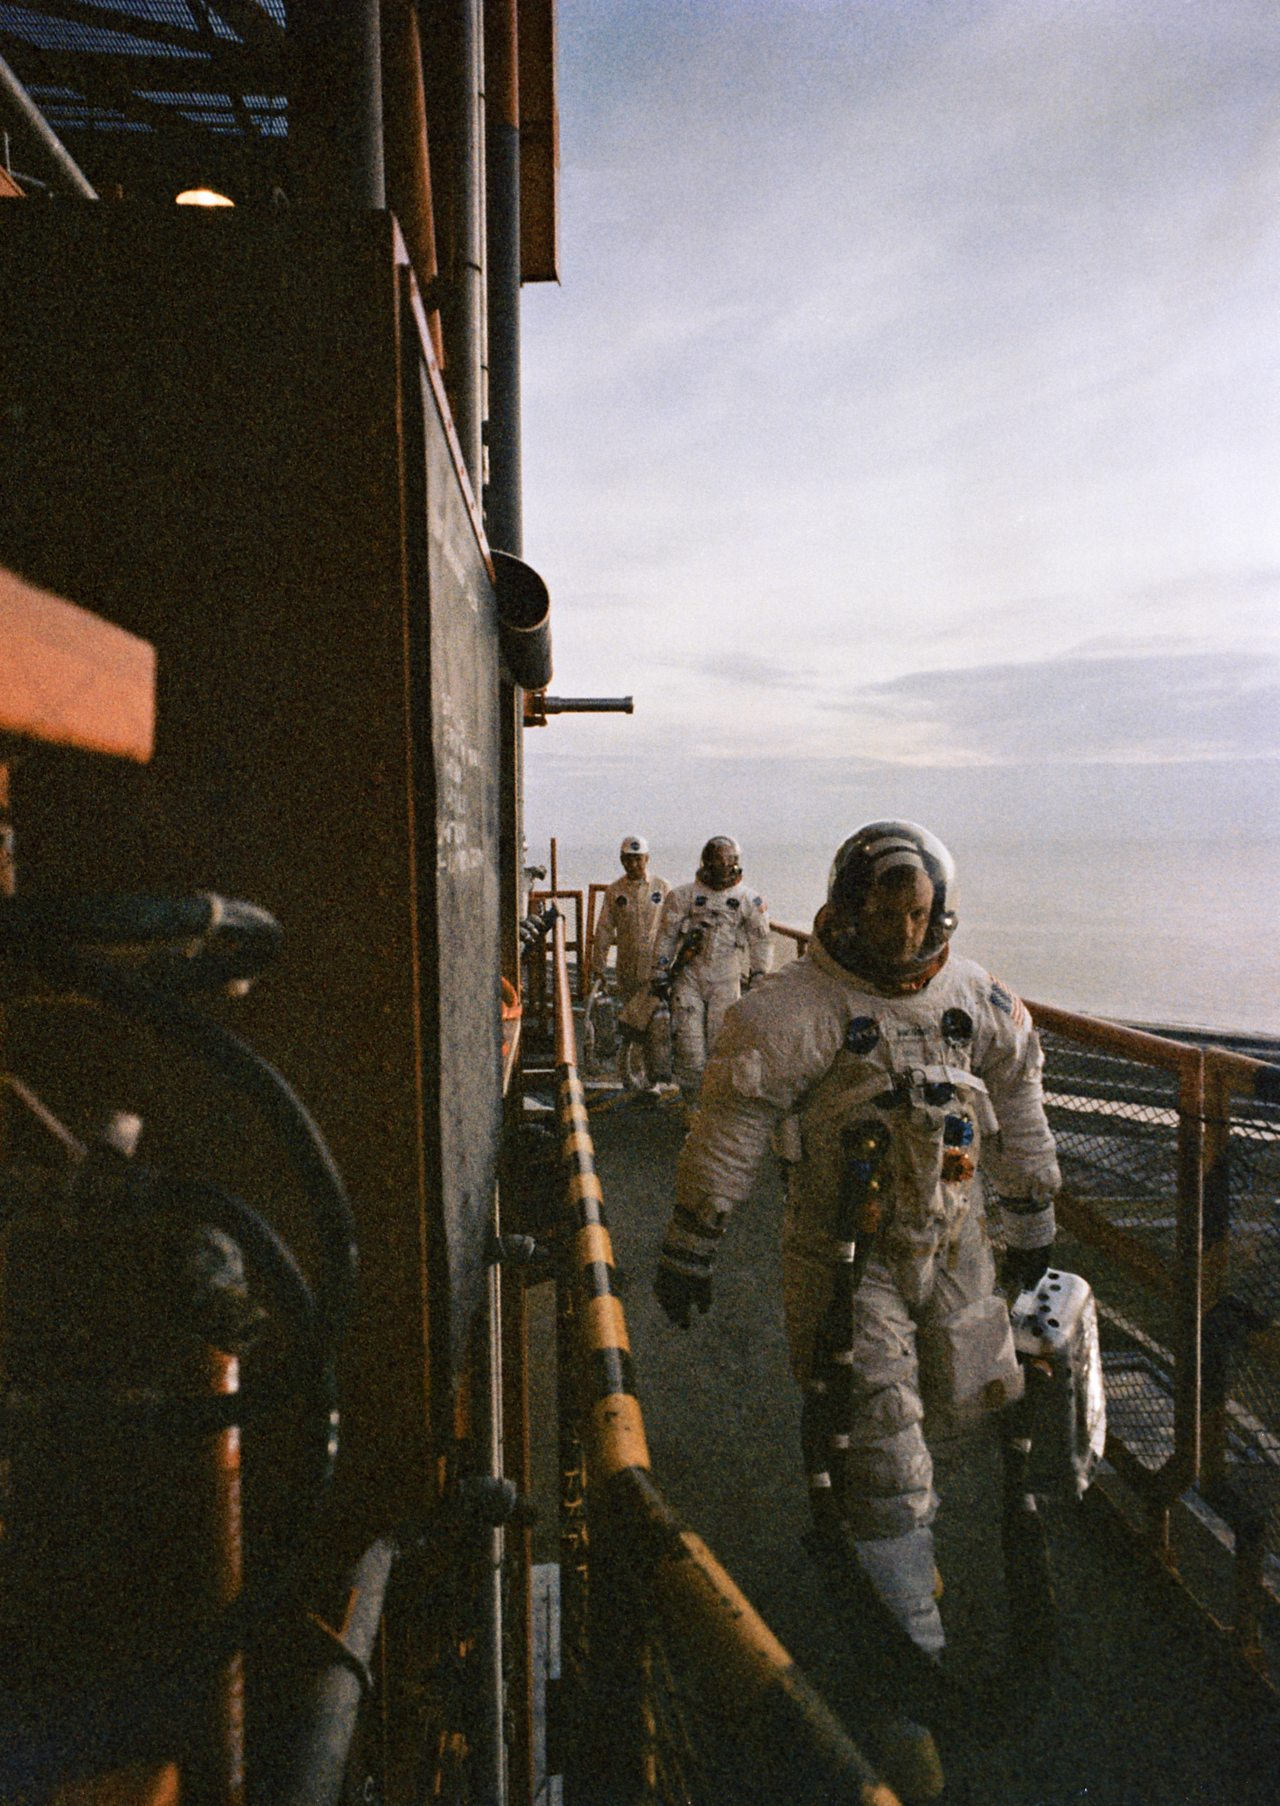 apollo 11 space mission bbc - photo #41